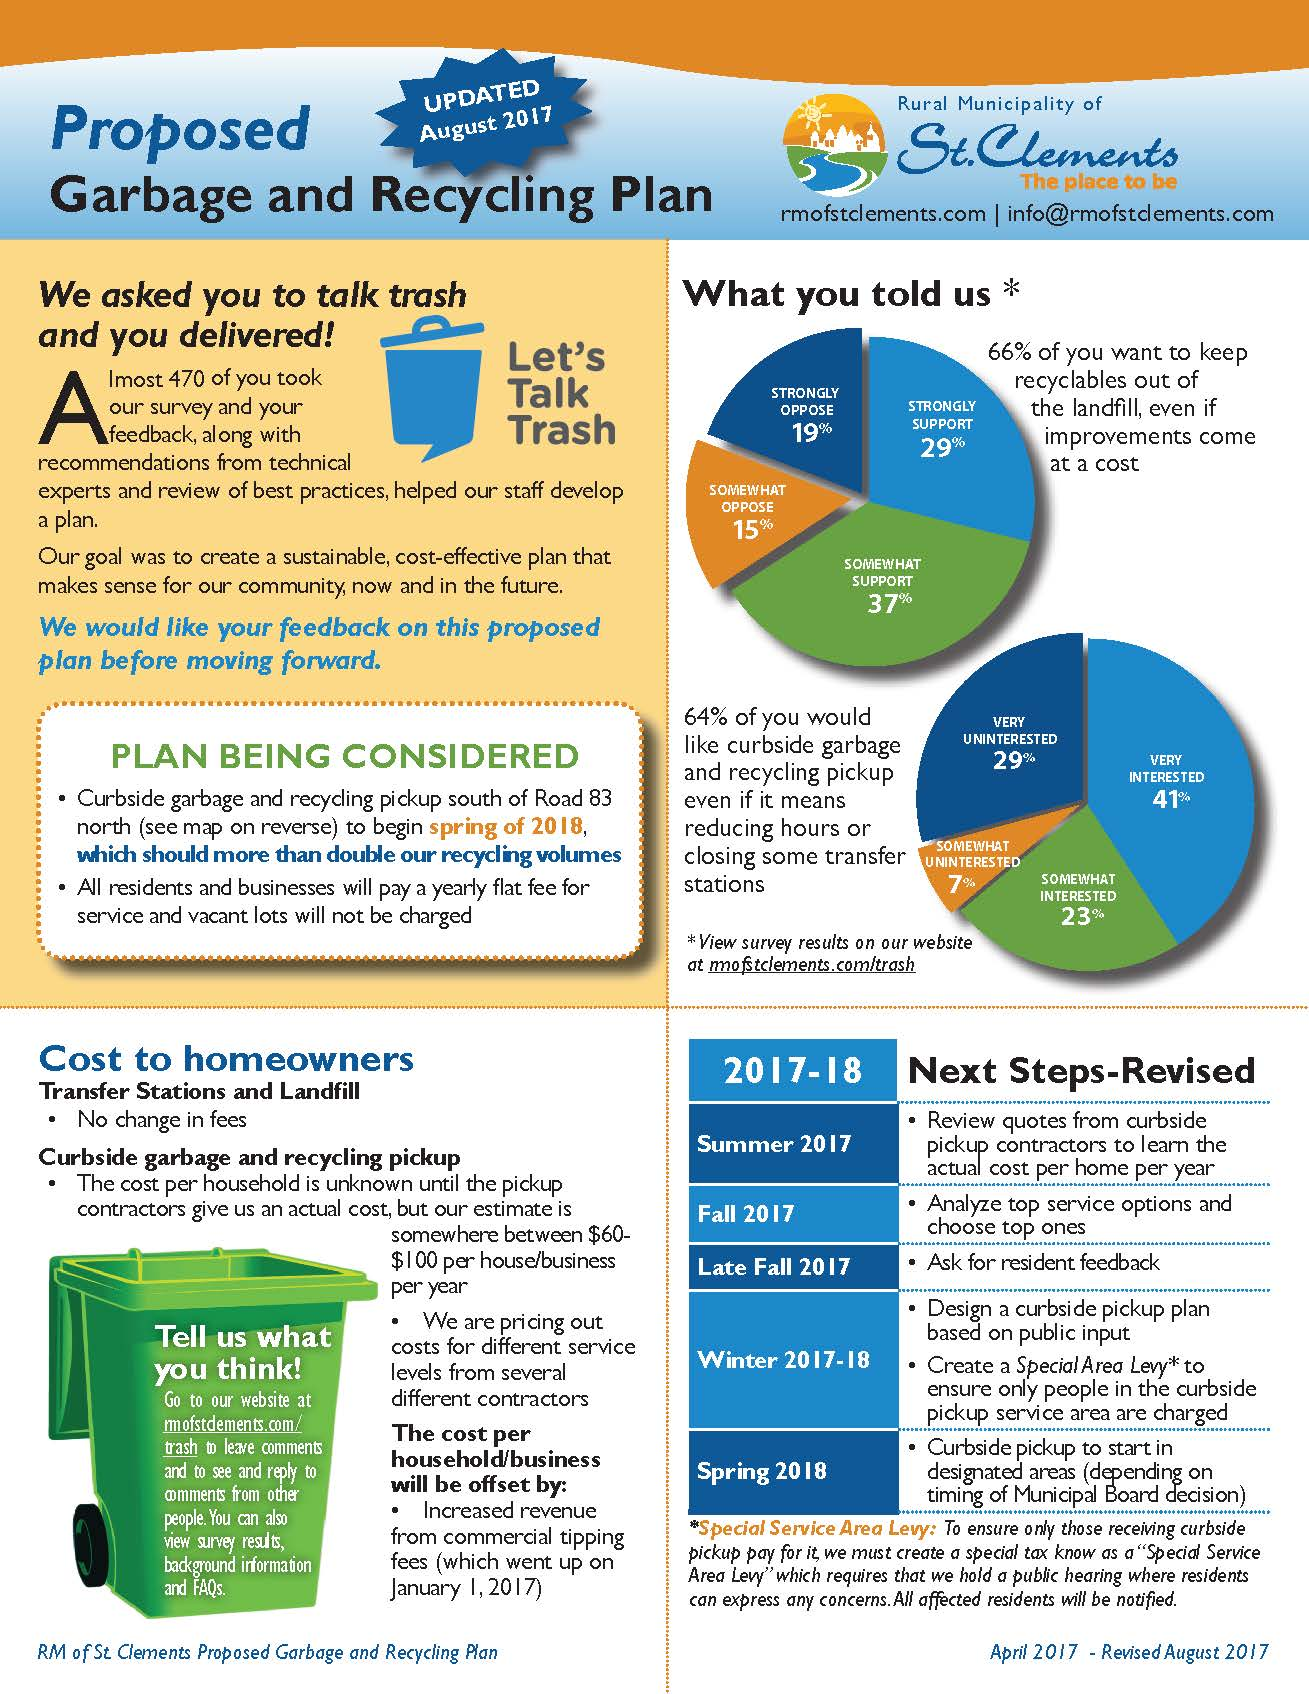 Proposed Curbside Garbage and Recycling Pickup information sheet-page 1